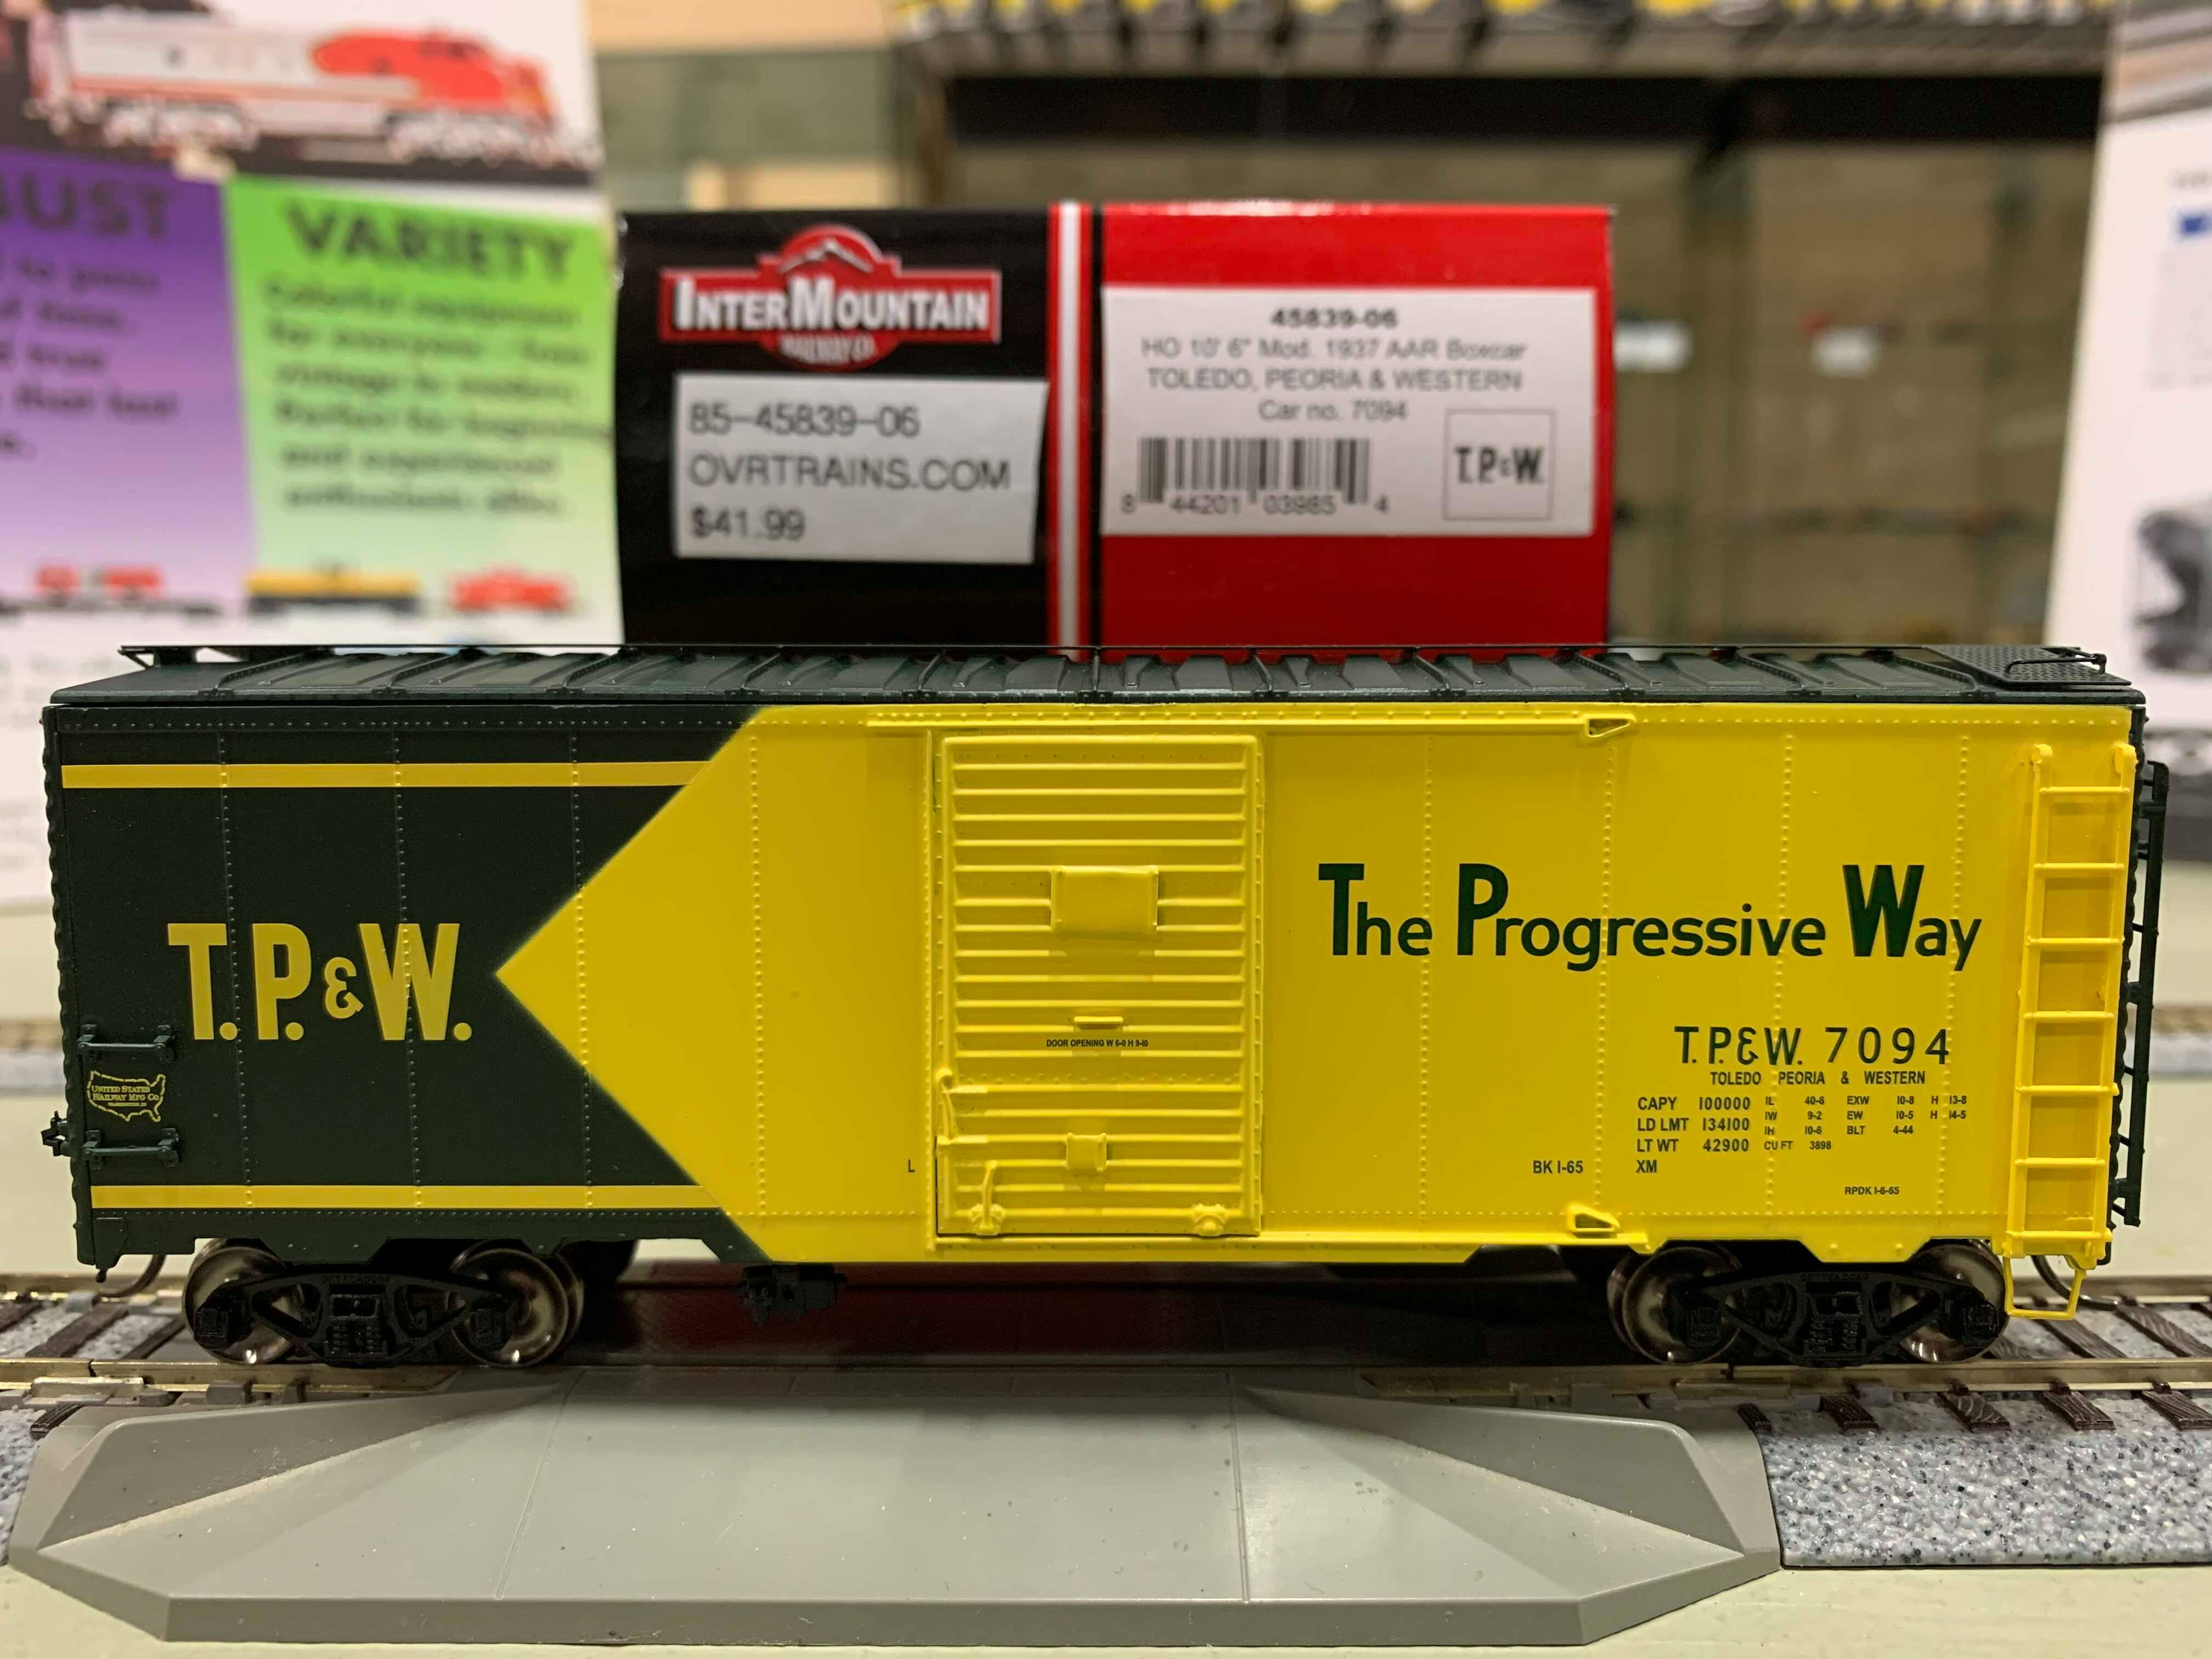 Intermountain 45839-03 HO Scale - 10Ft 6In Modified 1937 AAR Boxcar - Toledo, Peoria & Western #7045